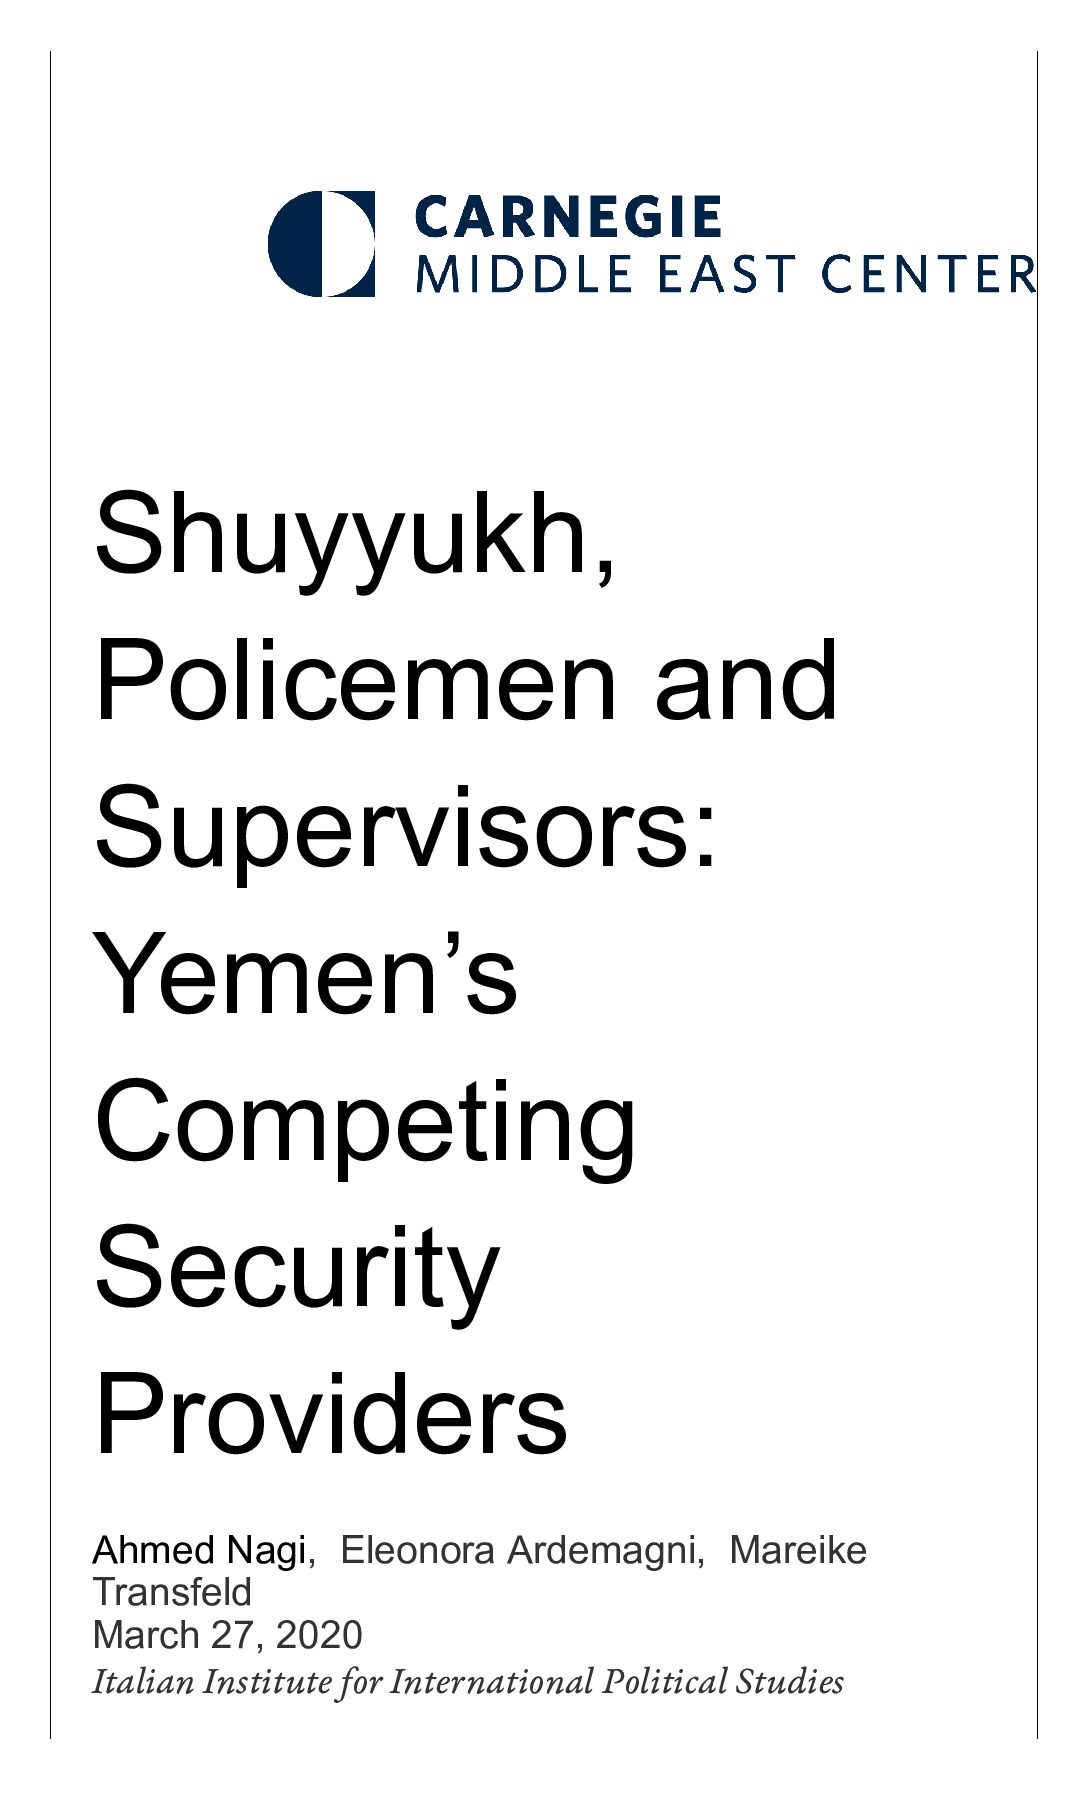 Shuyyukh, Policemen and Supervisors: Yemen's Competing Security Providers